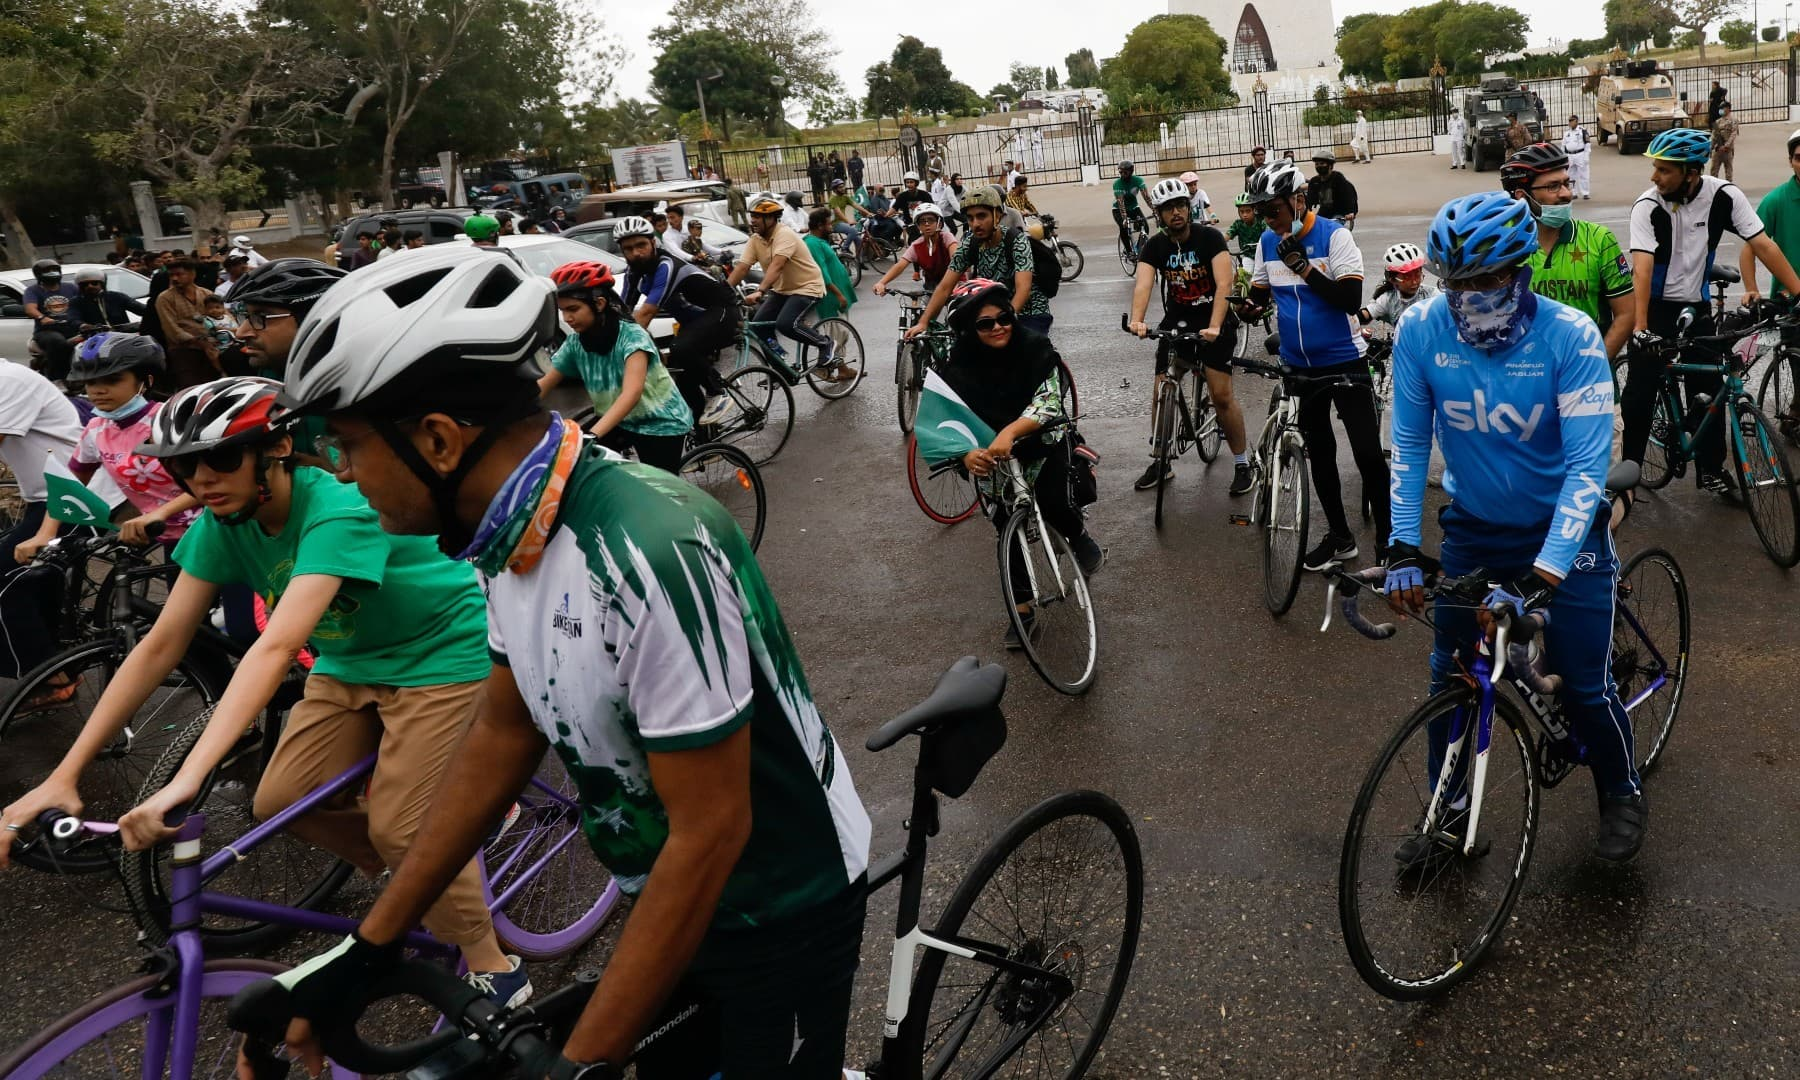 Cyclists pause during the celebration of Independence Day amid the coronavirus pandemic, in Karachi on August 14. — Reuters